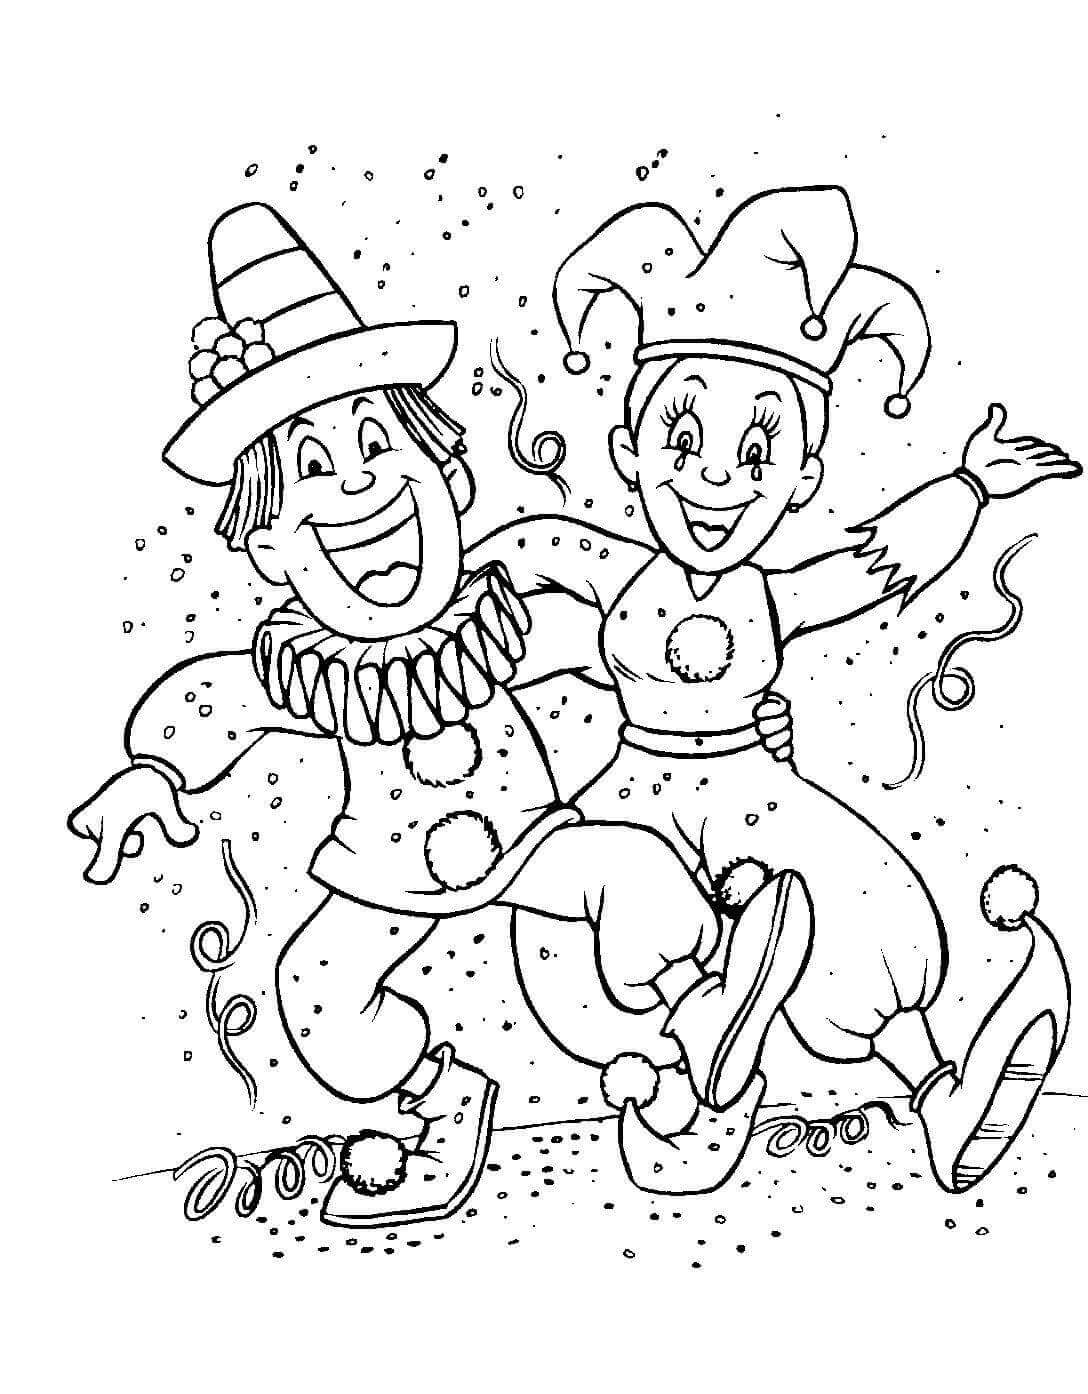 The Carnival Season Of Mardi Gras Coloring Pages | Mardi gras ... | 1394x1088